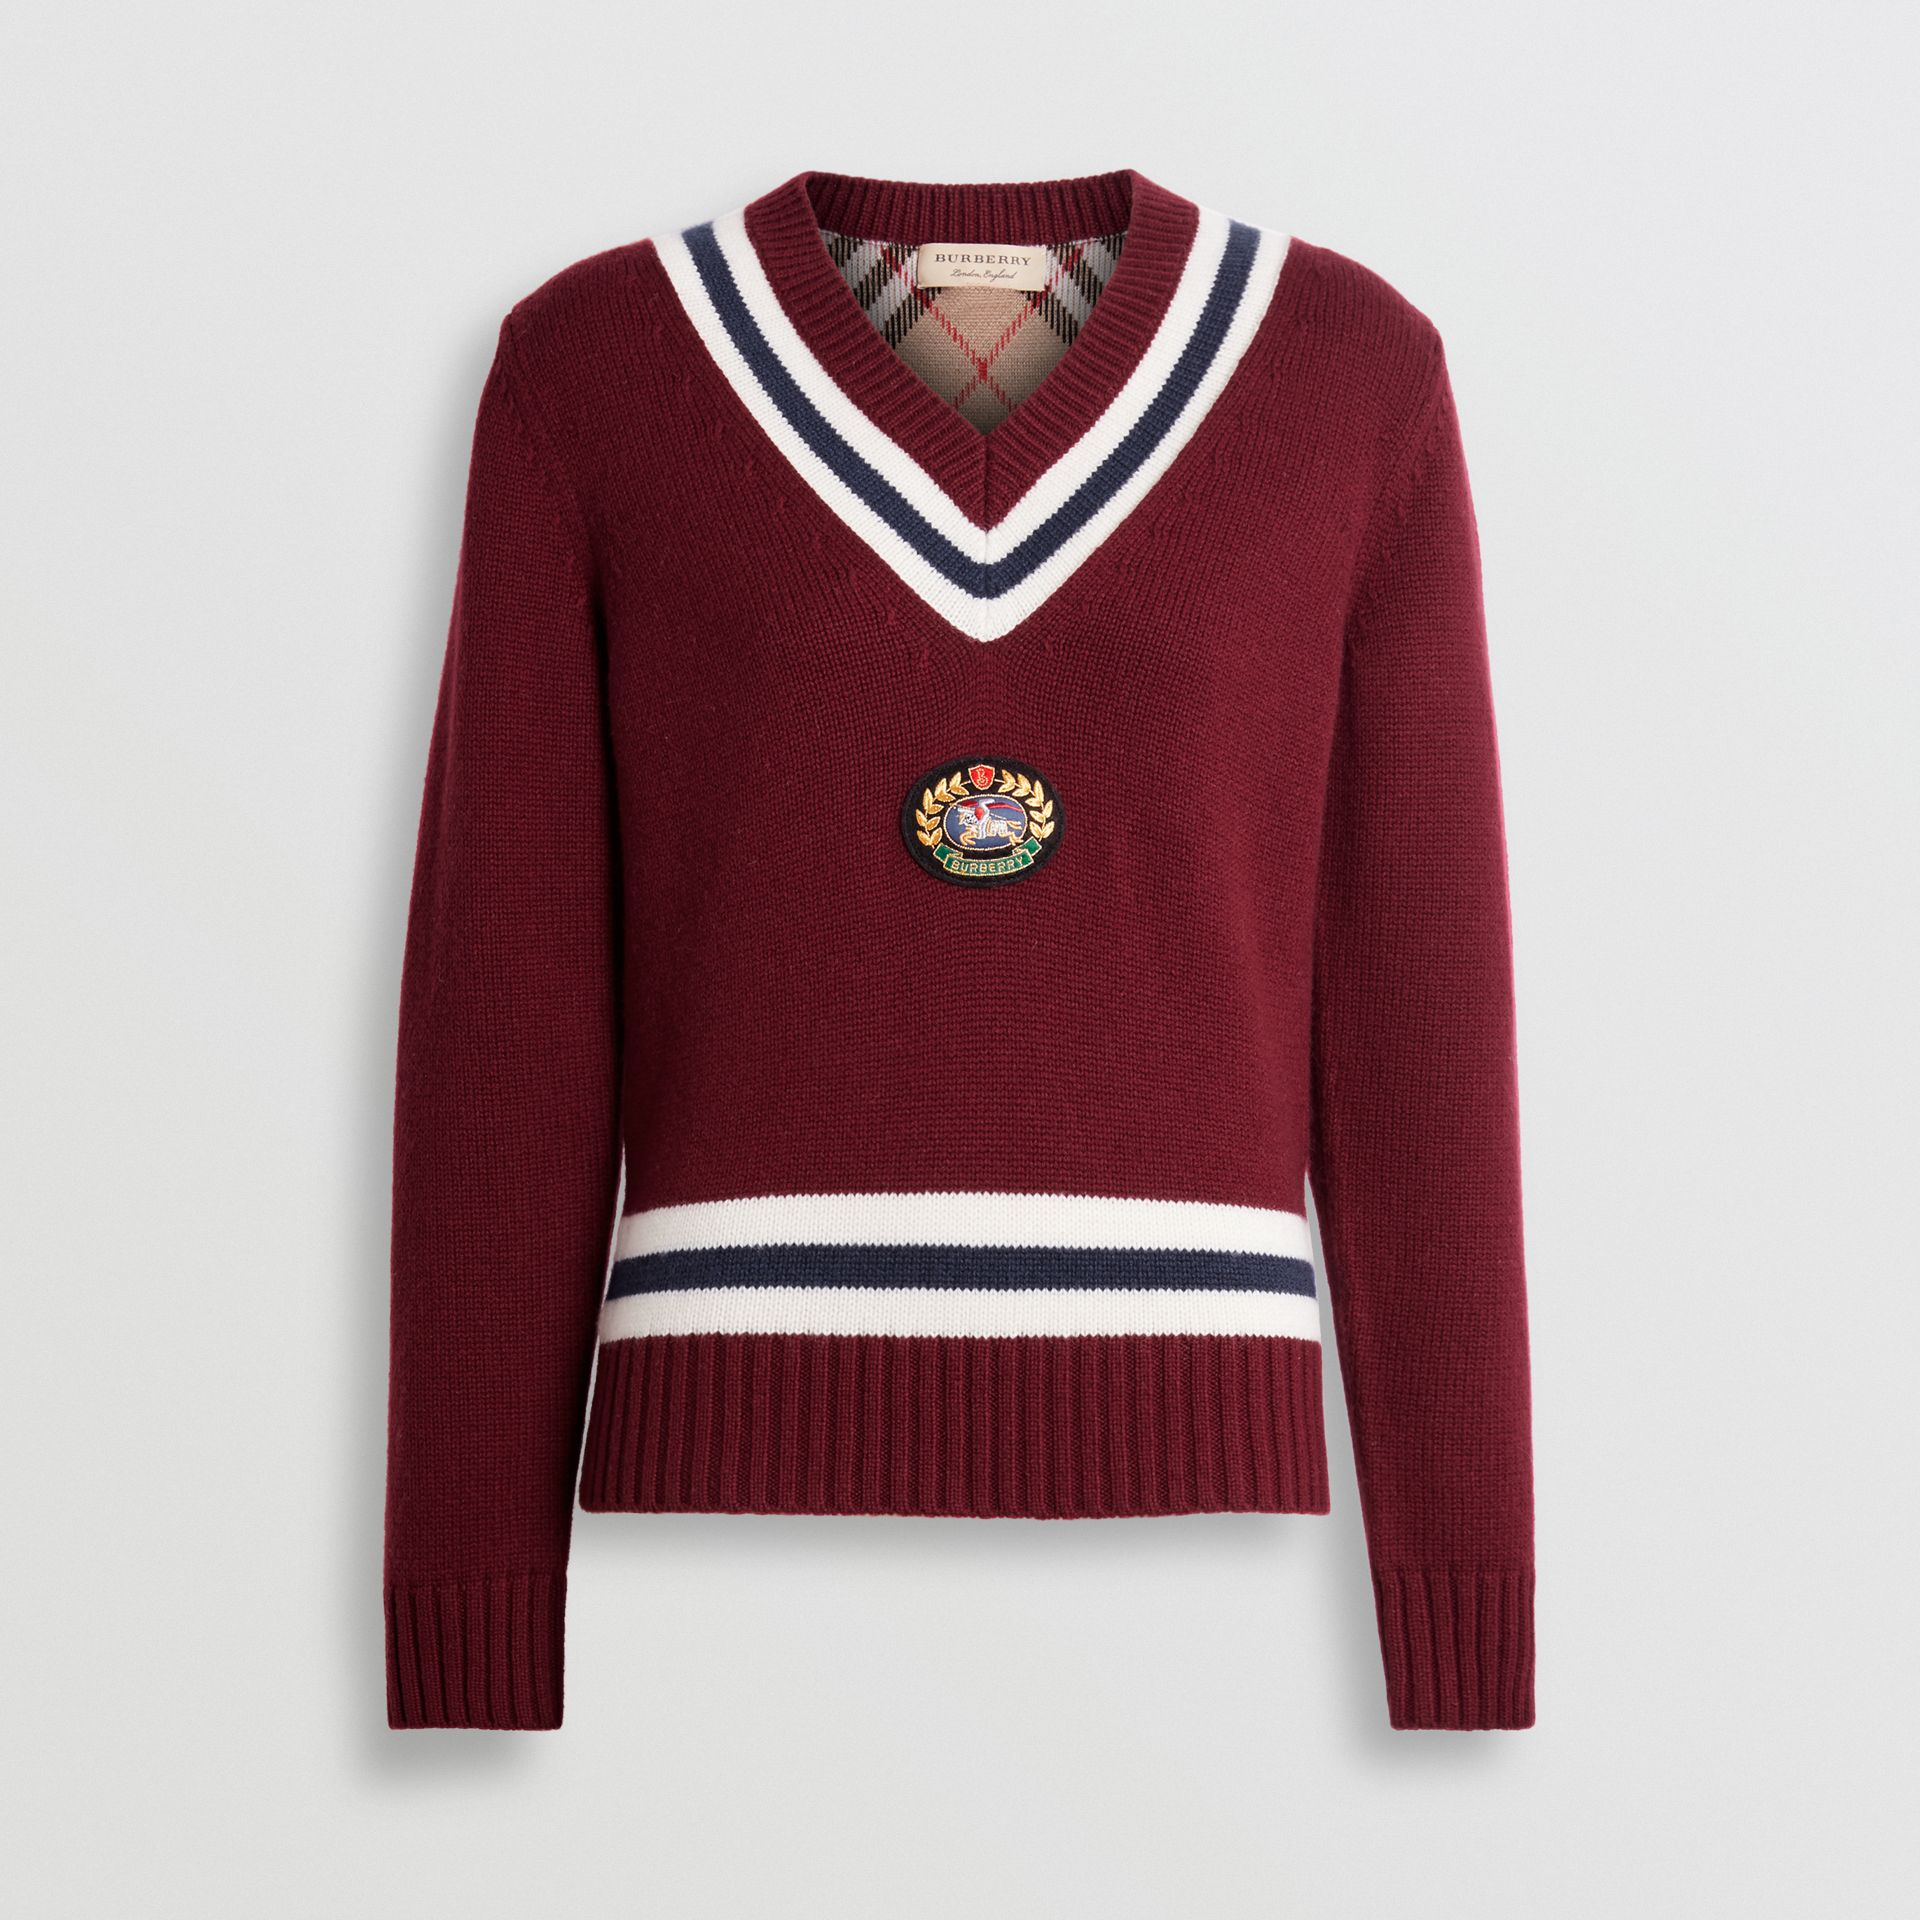 Embroidered Crest Wool Cashmere Sweater in Burgundy - Women | Burberry Australia - gallery image 3